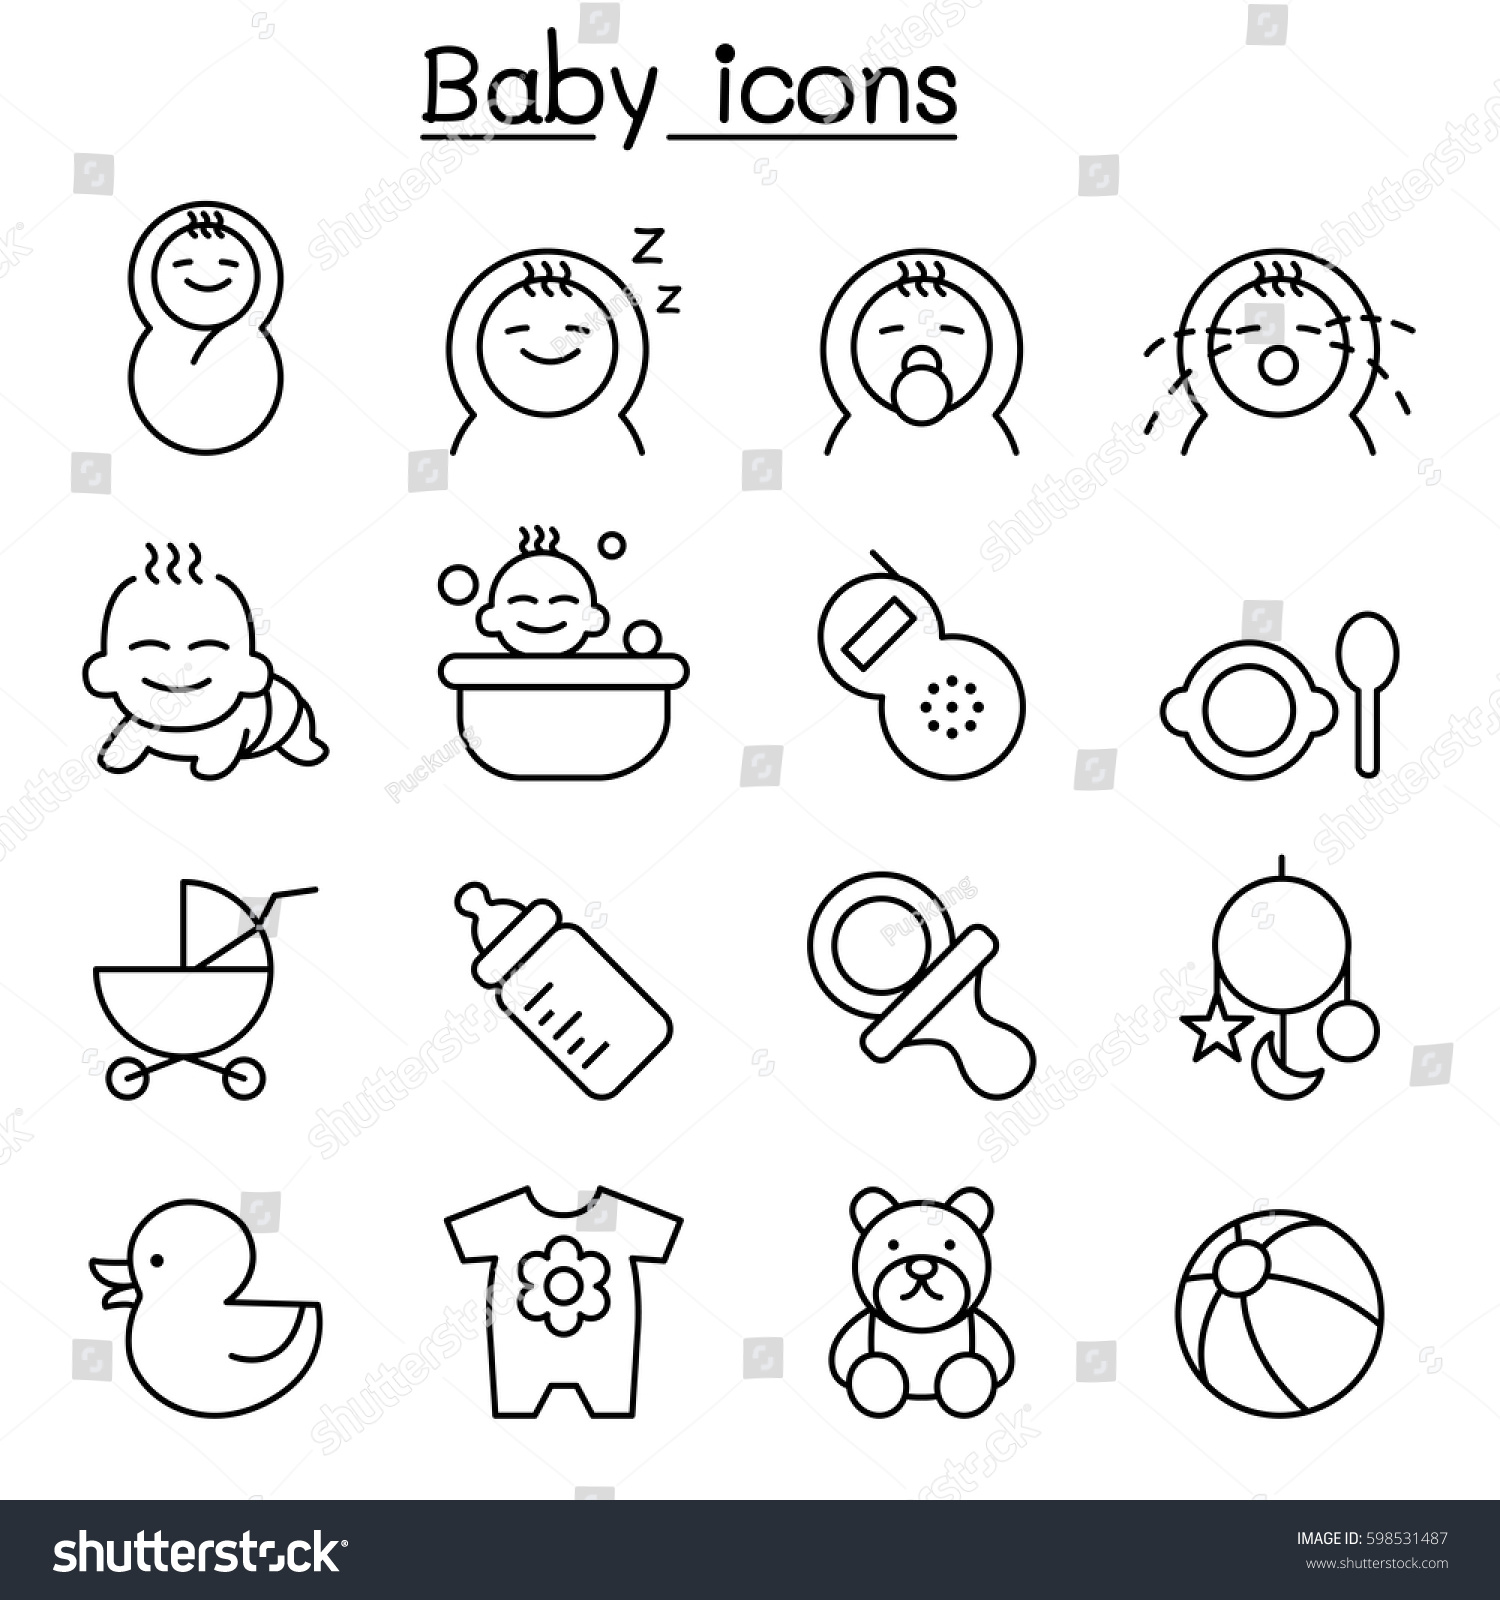 Download now the free icon pack 'Baby Pack 1'. Available source files and IconFont for both personal & commercial use. Office set 50 icons. Logistics Delivery icons. Avatar Set 9 icons. Public transportation 50 icons. Ui interface icons. Morning breakfast 50 icons.